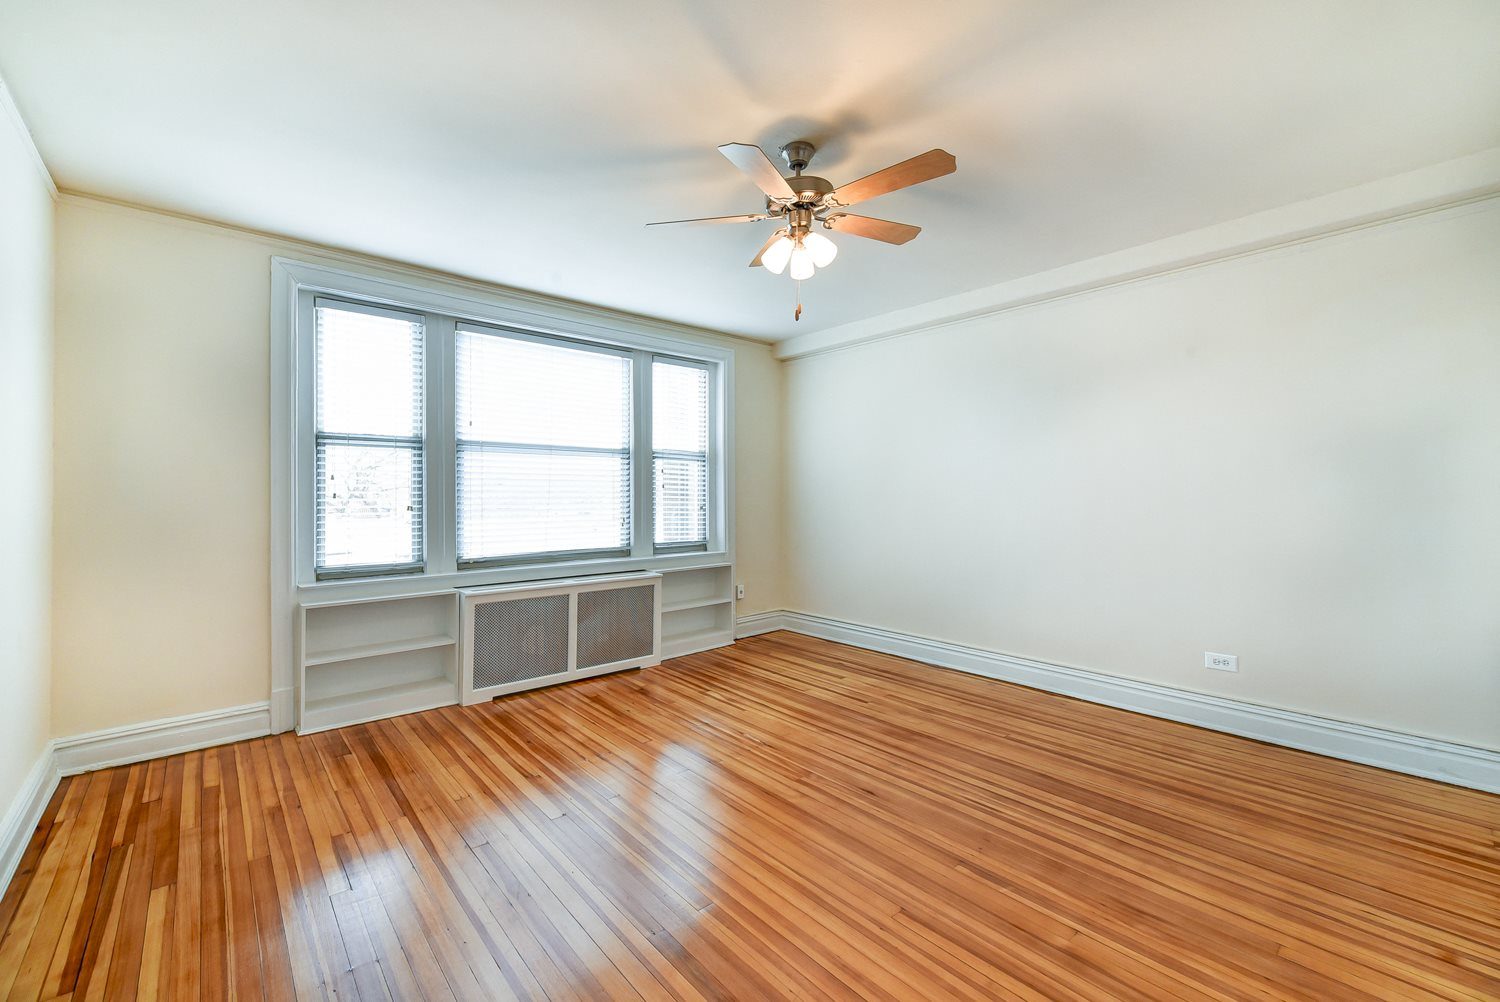 2701-Connecticut-Avenue-Bedroom-With-Built-In-Shelves